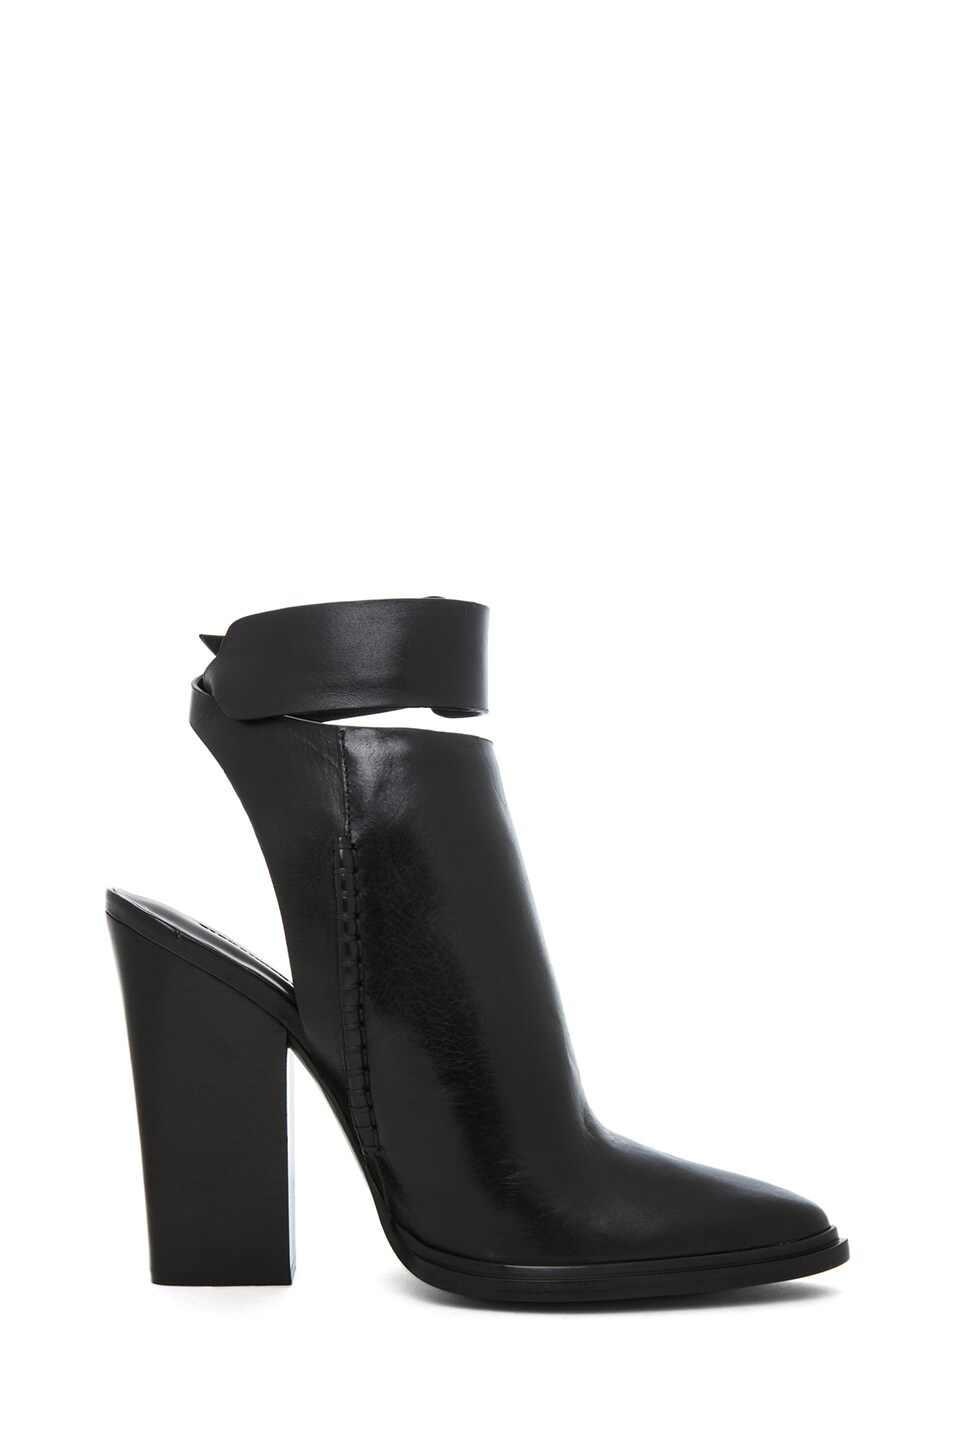 Image 5 of Alexander Wang Dasha Bootie in Black